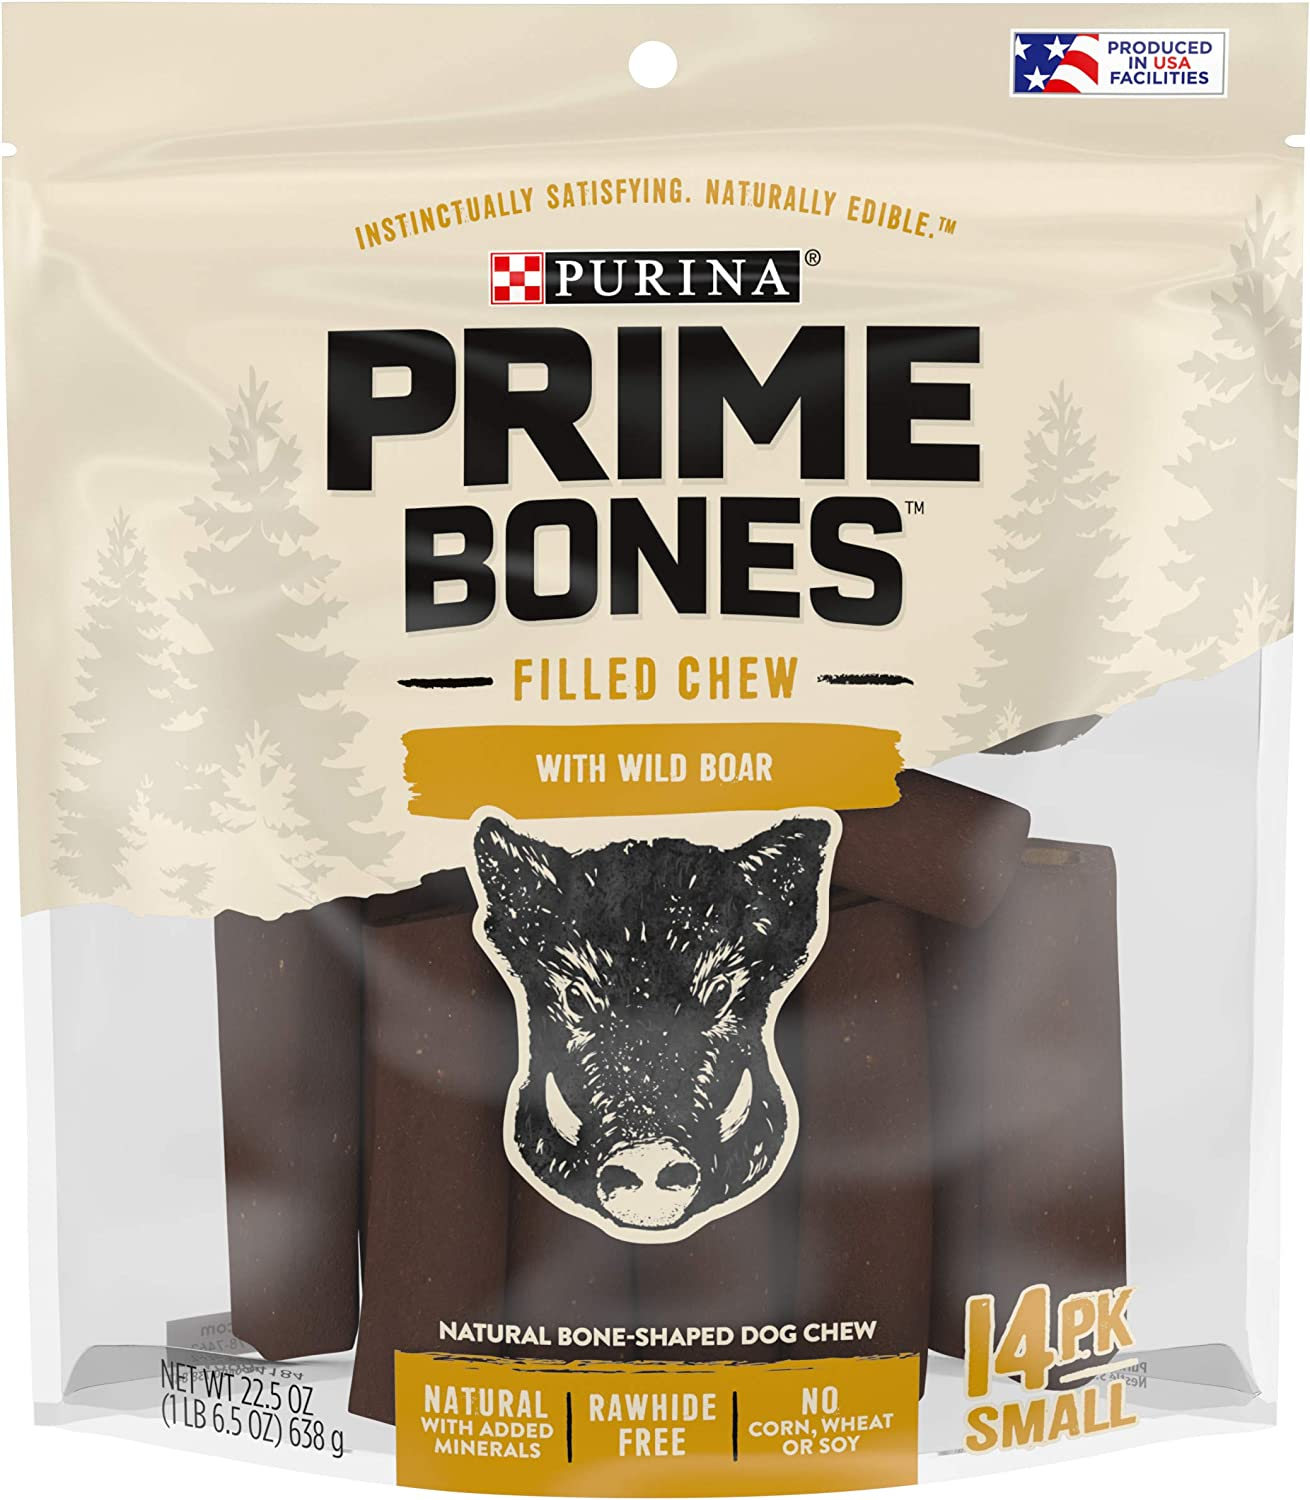 Purina Prime Bones Natural Dog Treats Made in USA Rawhide Free Wild Boar Filled Chew